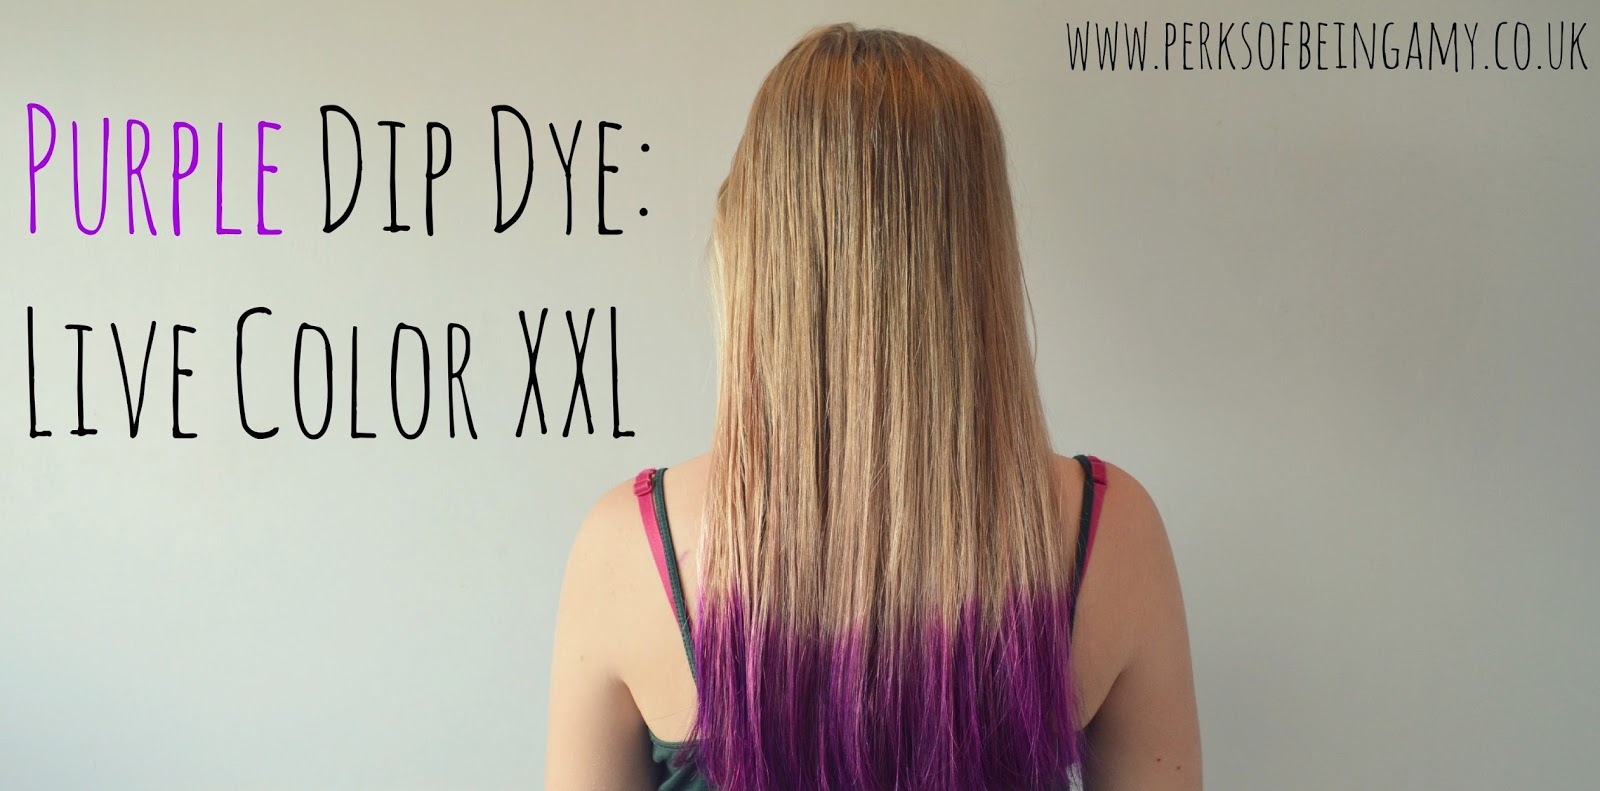 Purple Dip Dye Live Color Xxl Being Amy